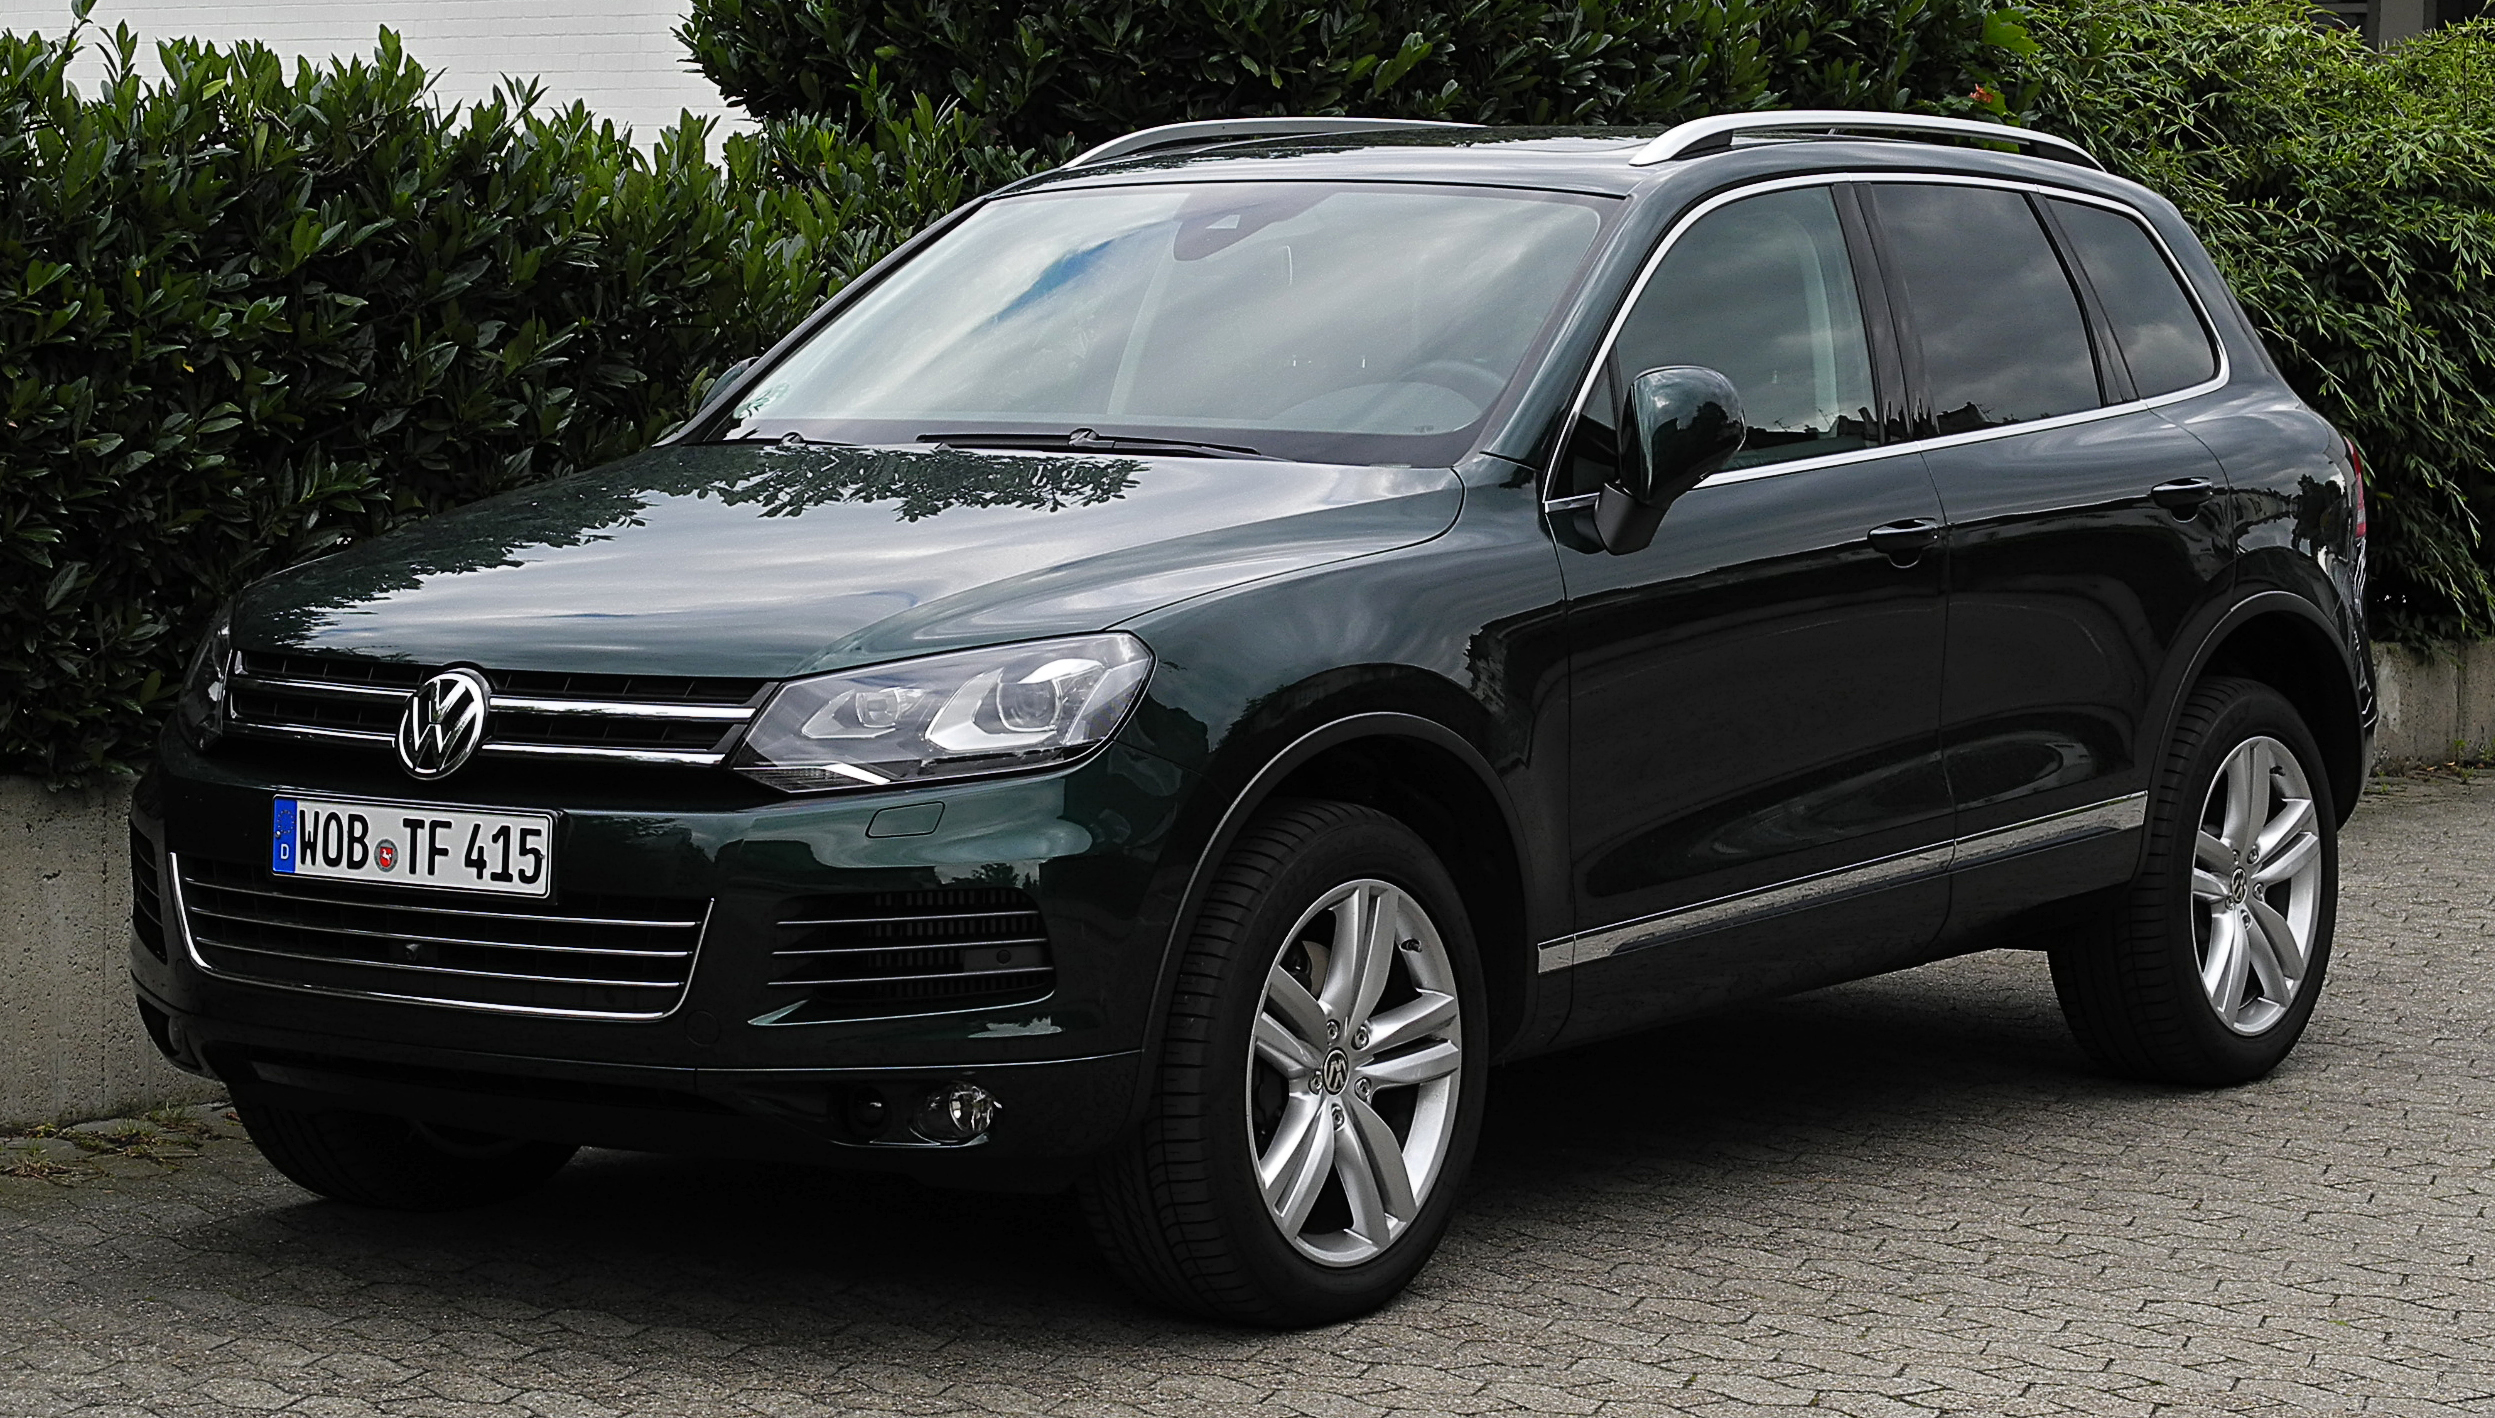 VW TOUAREG 2002 2003 2004 2005 2006 2007 2008 2009 2010 SERVICE REPAIR MANUAL